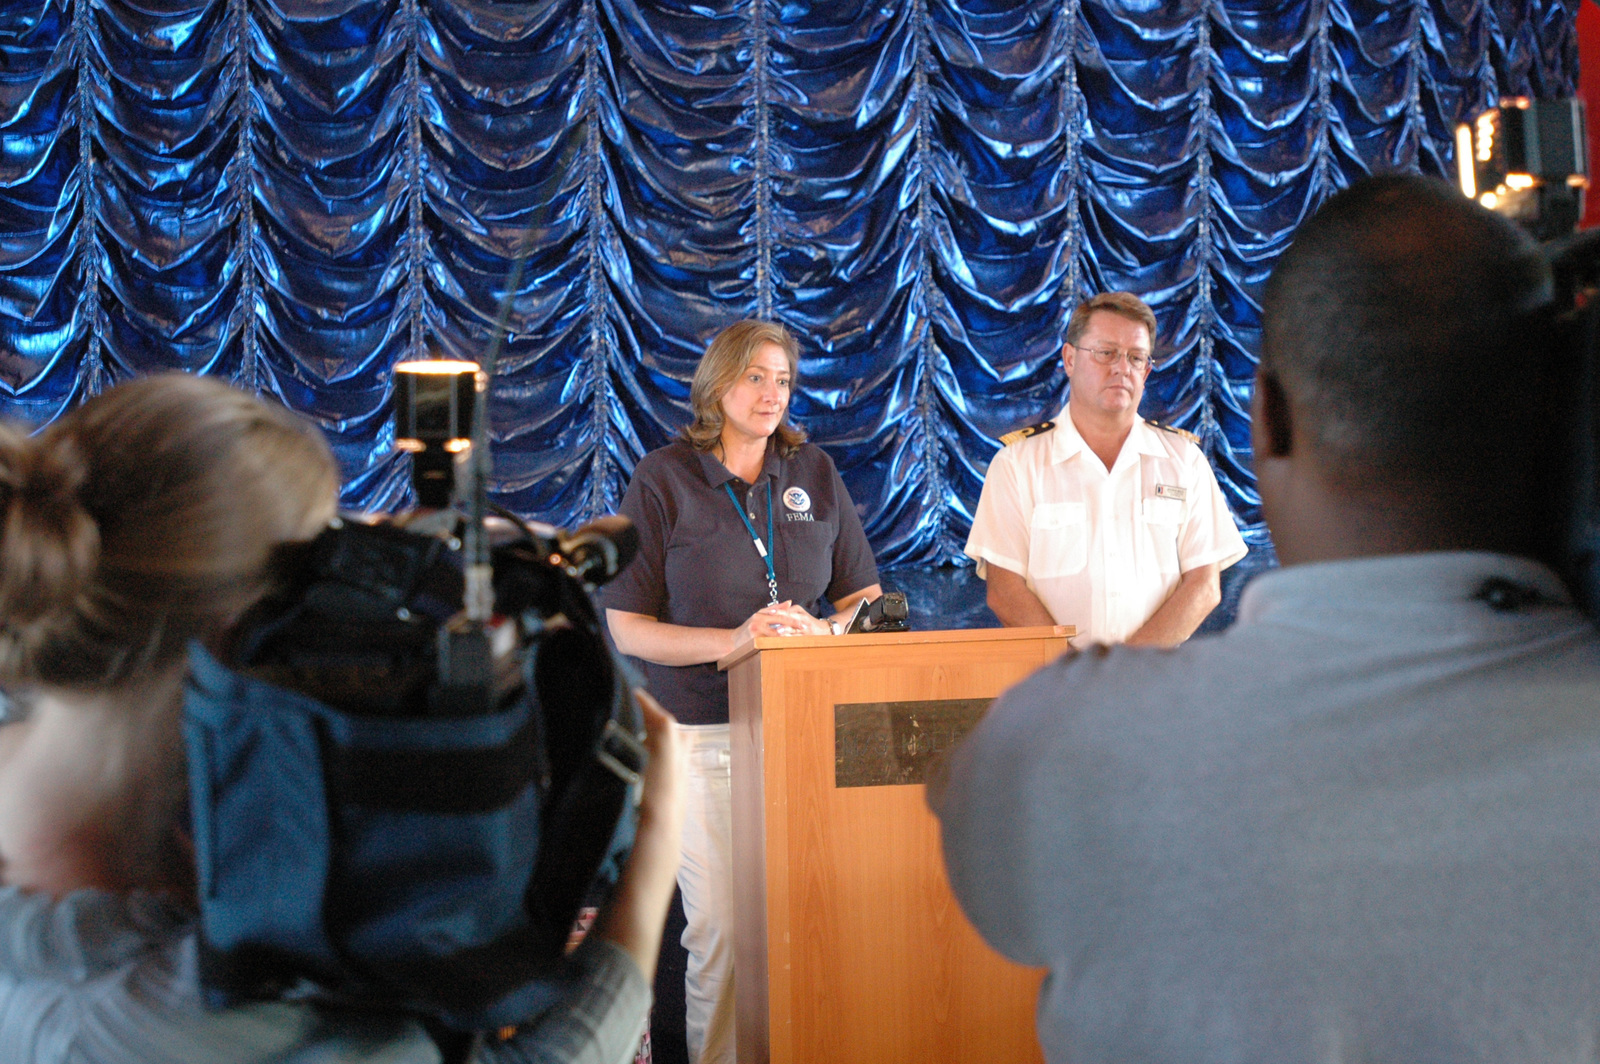 [Hurricane Katrina] Pascagoula, Miss., November 10, 2005 -- FEMA External Affairs Officer Mary Hudak (left) and Carnival Cruise Line representative Andrew Mace address the media aboard the cruise ship Holiday.  The media toured the ship to see how it is being used to house Mississippi residents displaced from their homes by Hurricane Katrina.  FEMA/Mark Wolfe